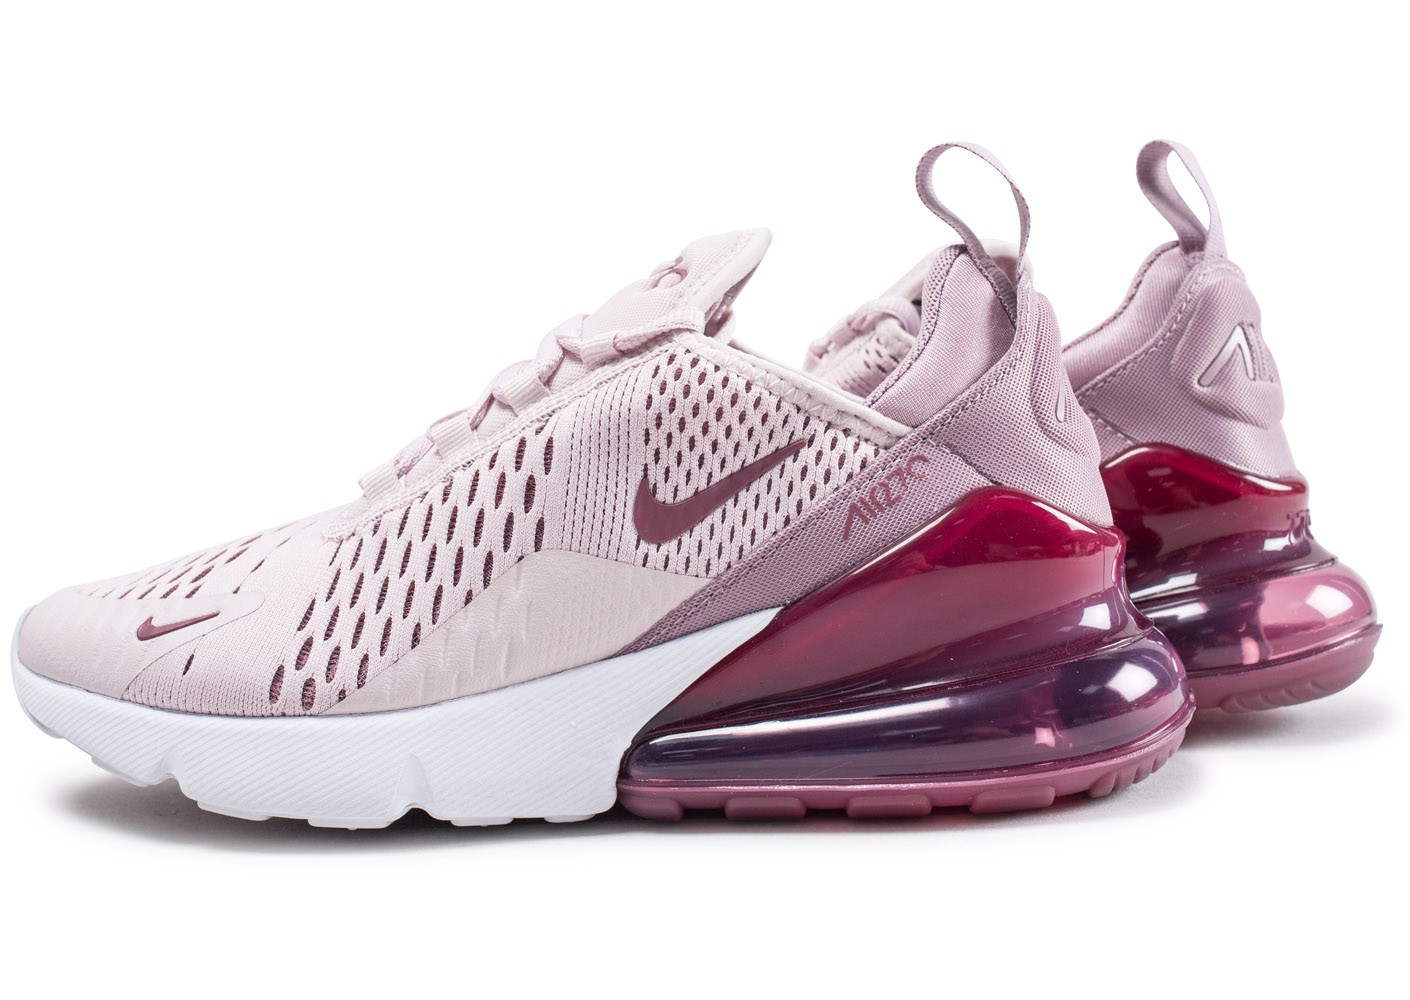 Nike Air Max 270 rose Chaussures Baskets femme Chausport